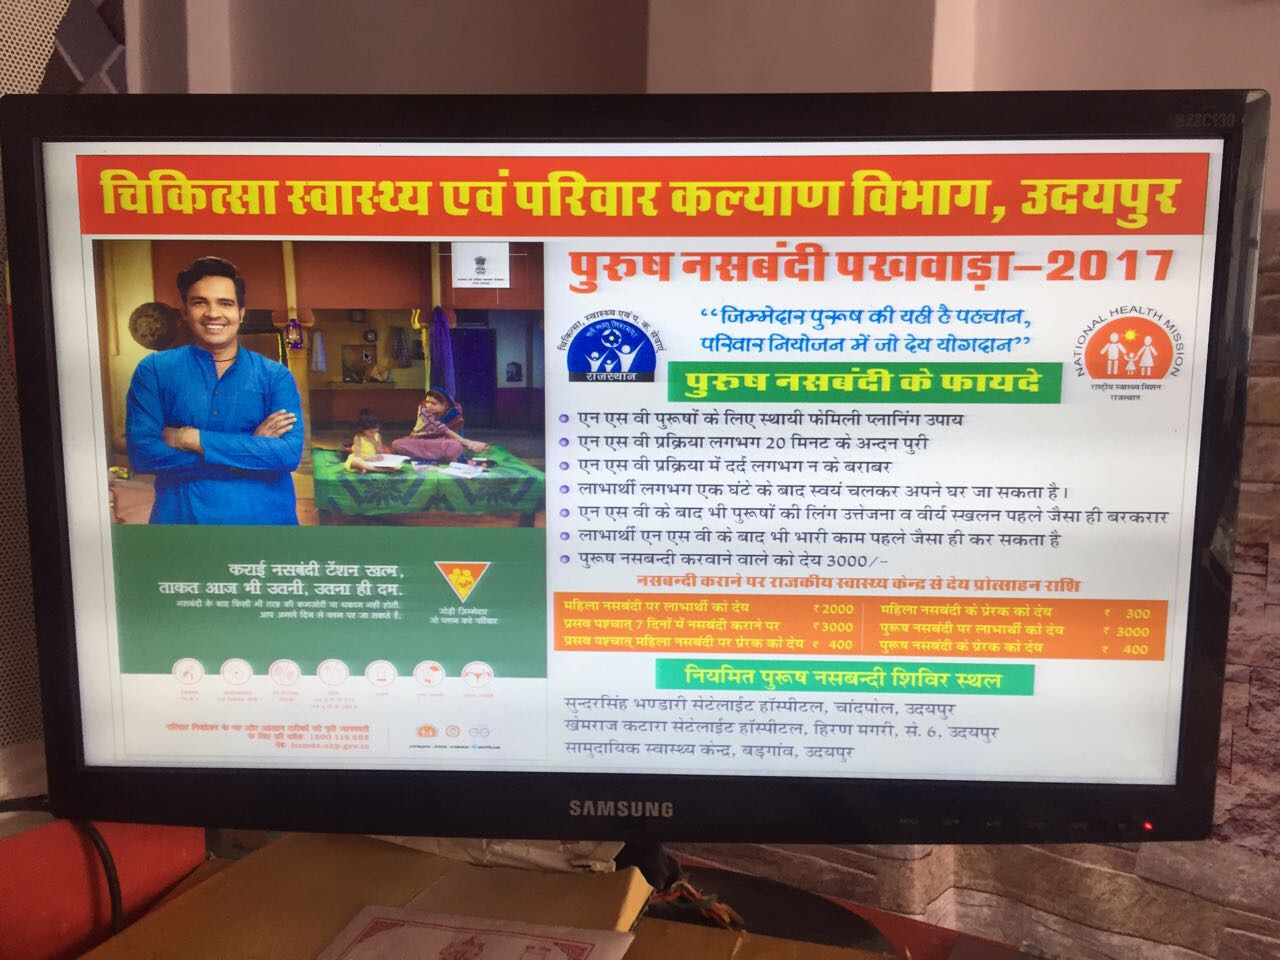 Udaipur district, Rajasthan observes Vasectomy Fortnight.